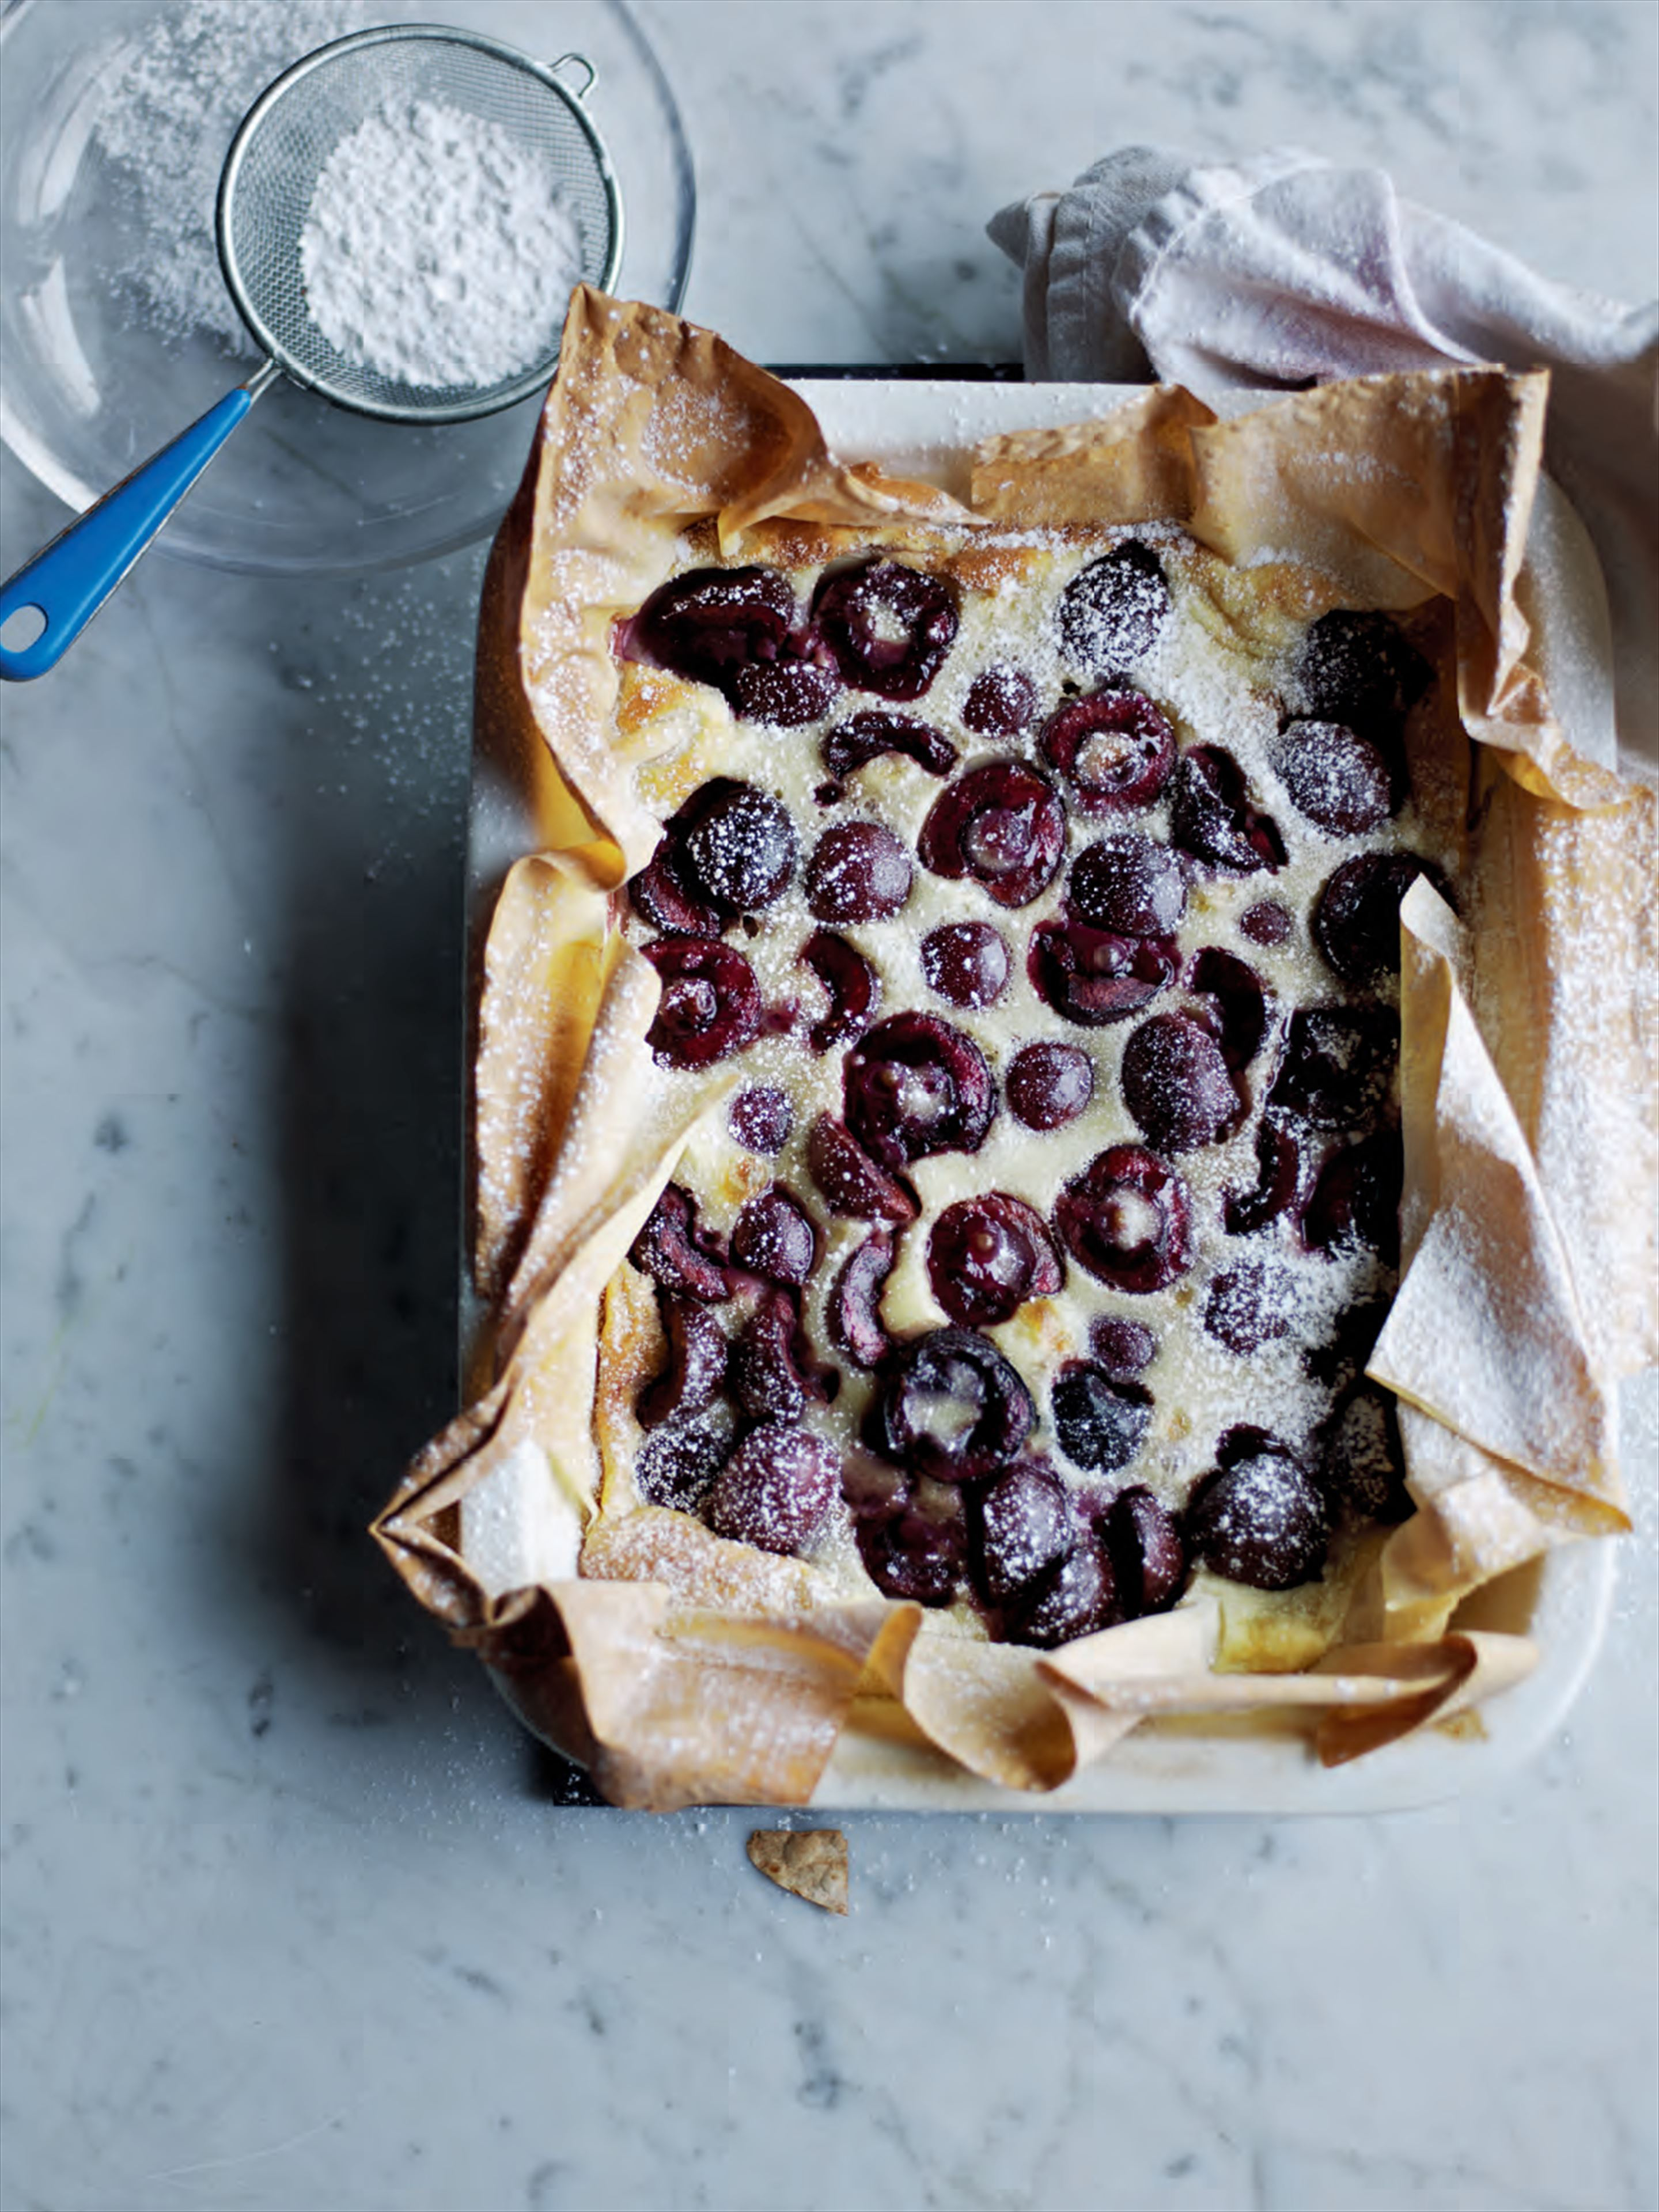 Black cherry clafoutis